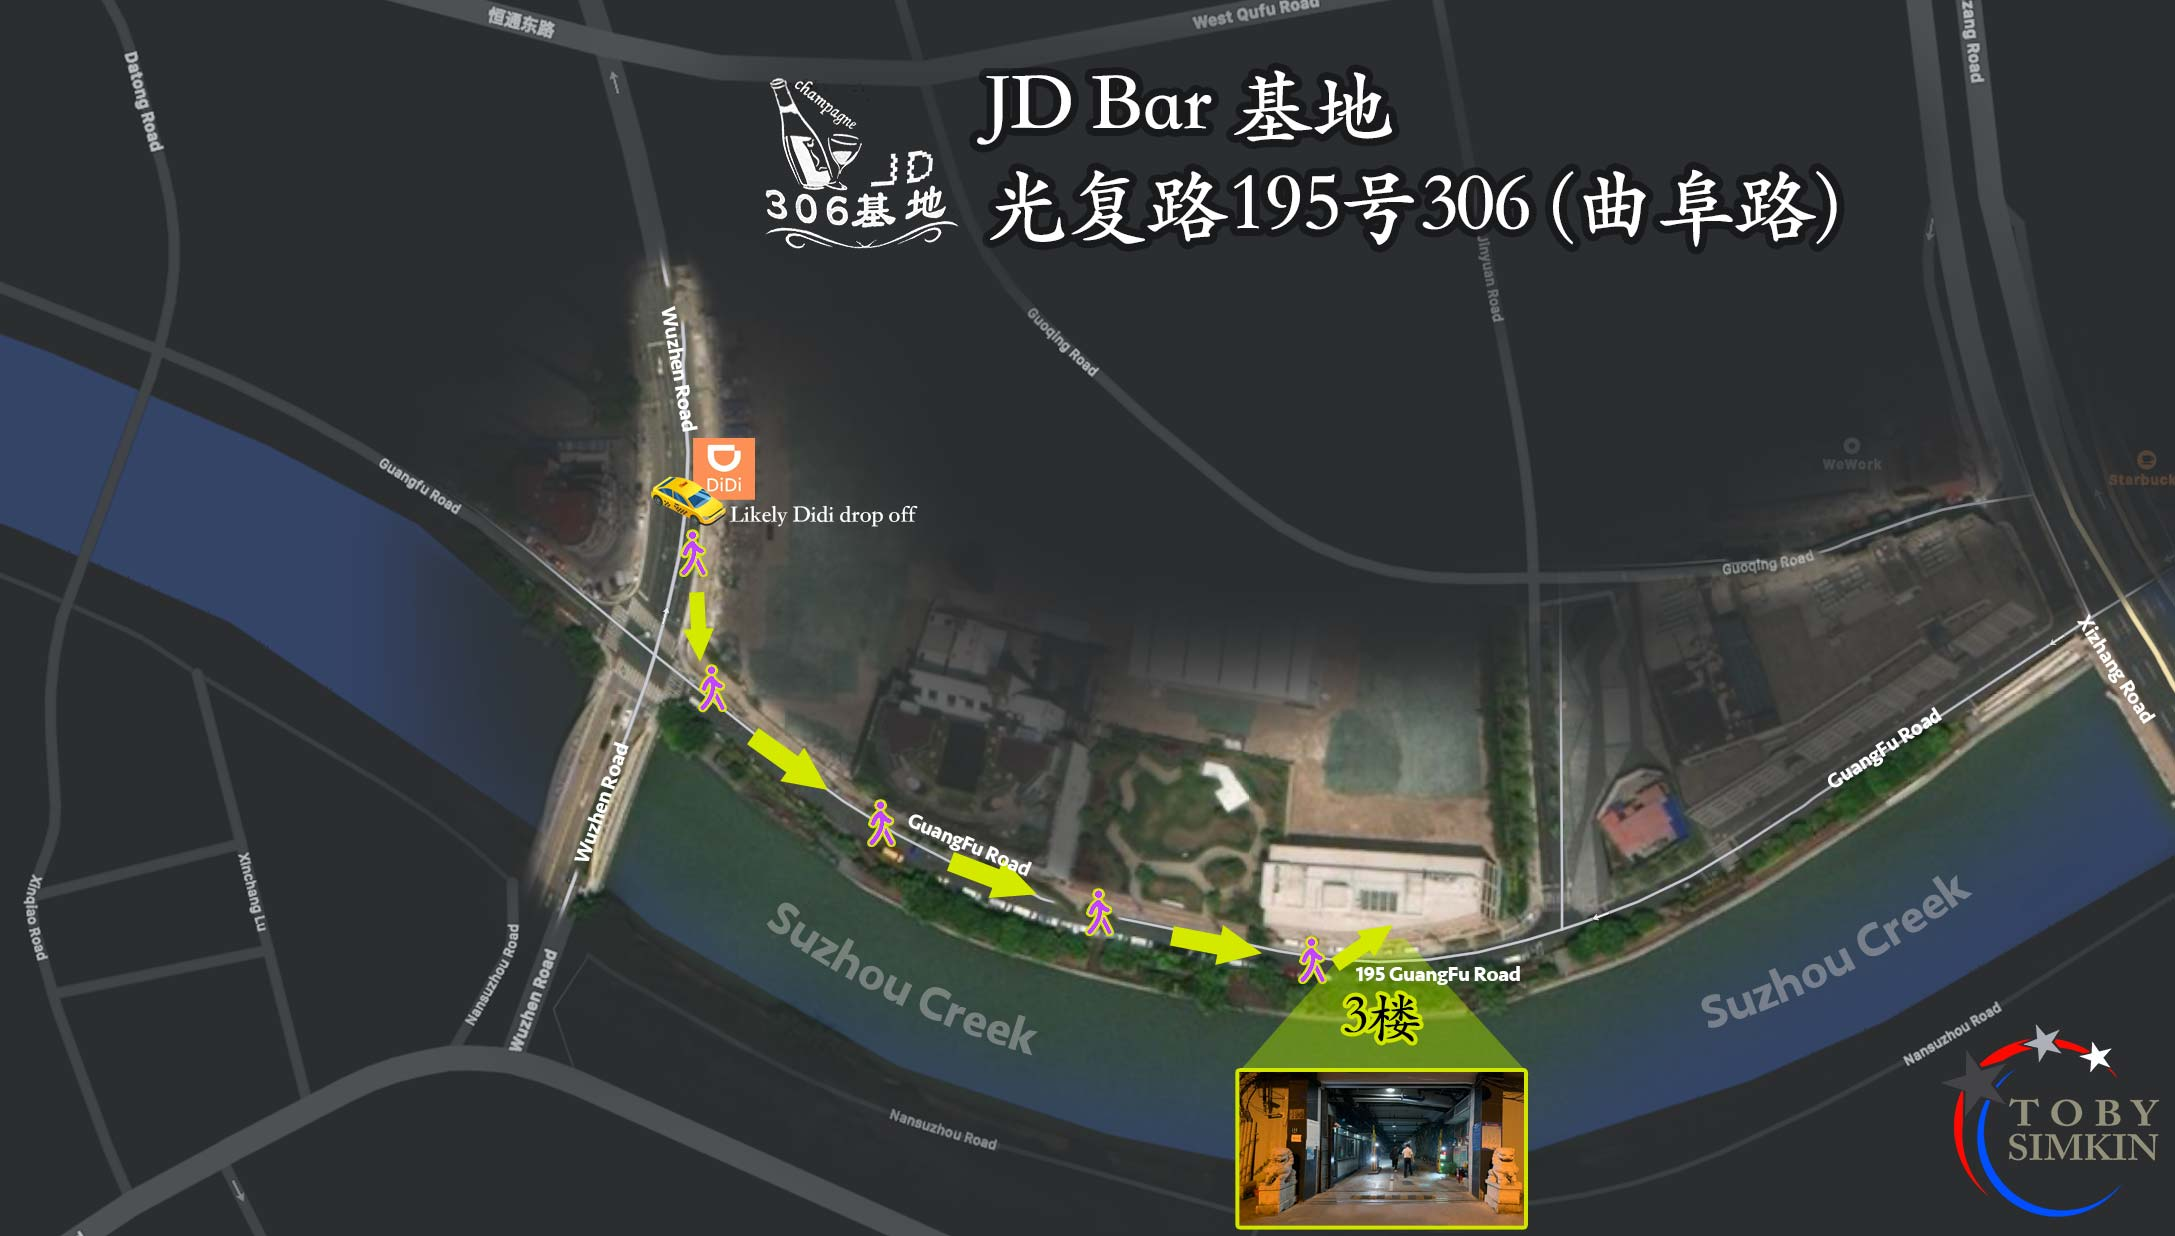 JD Gay Bar in Shanghai Map